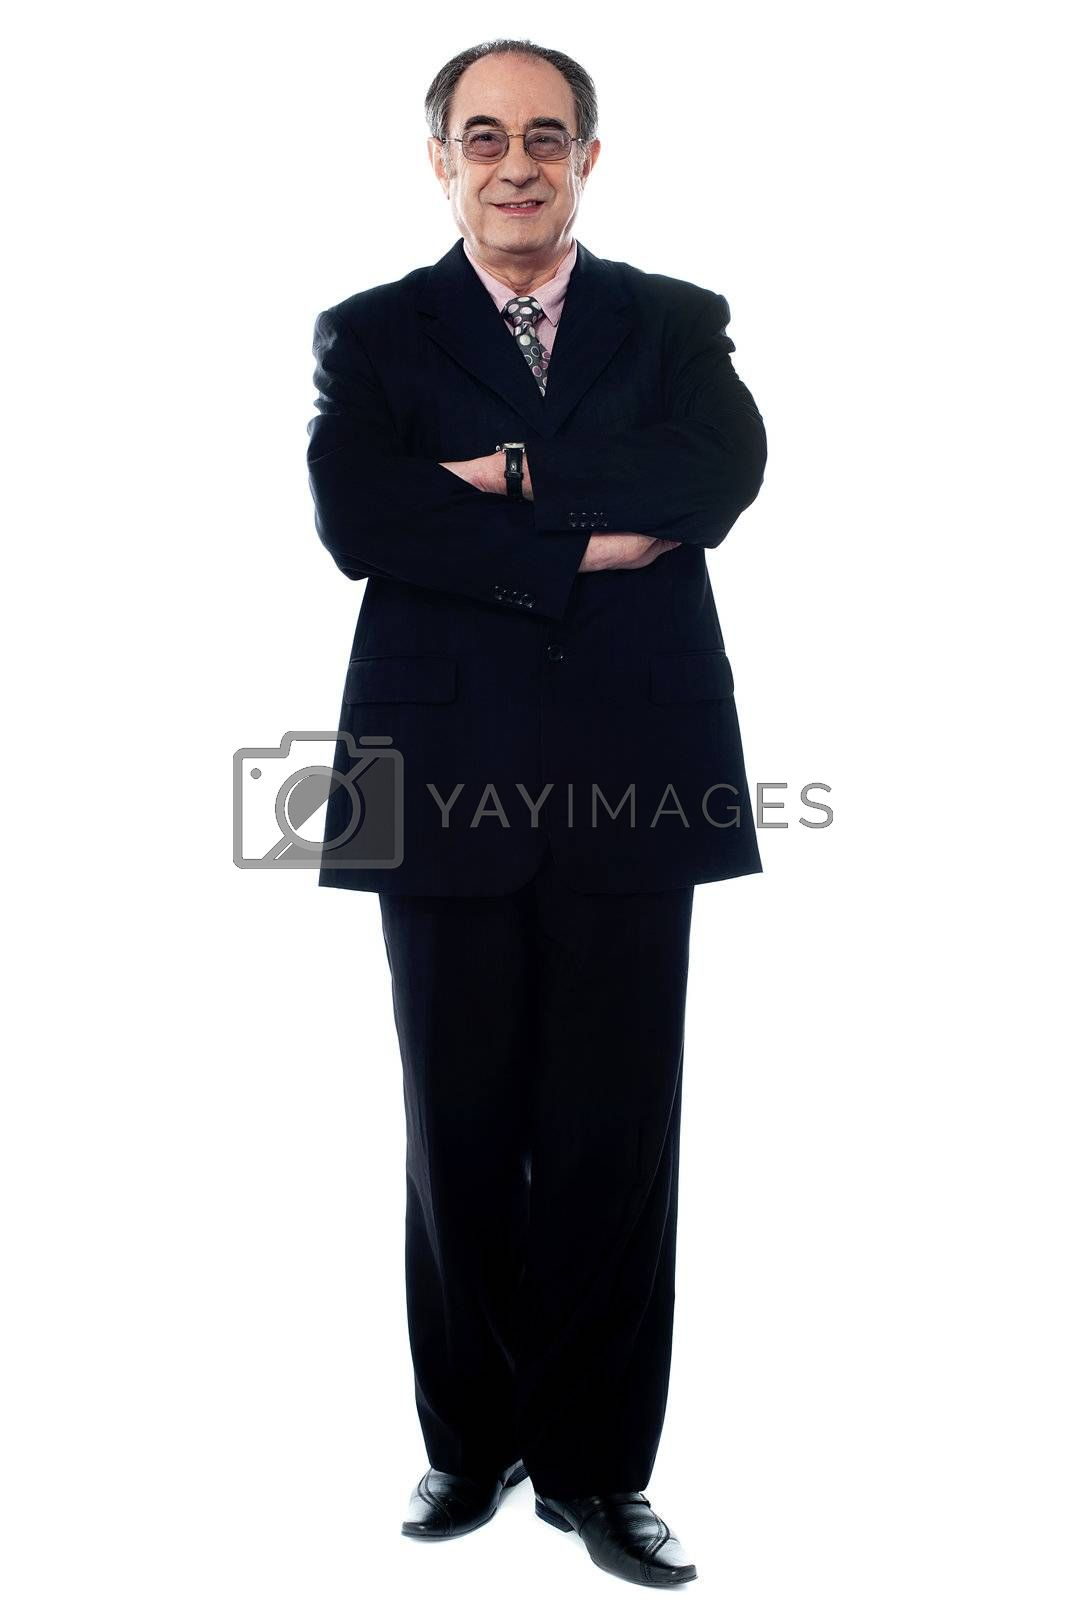 Businessman in a black suit posing in front of camera